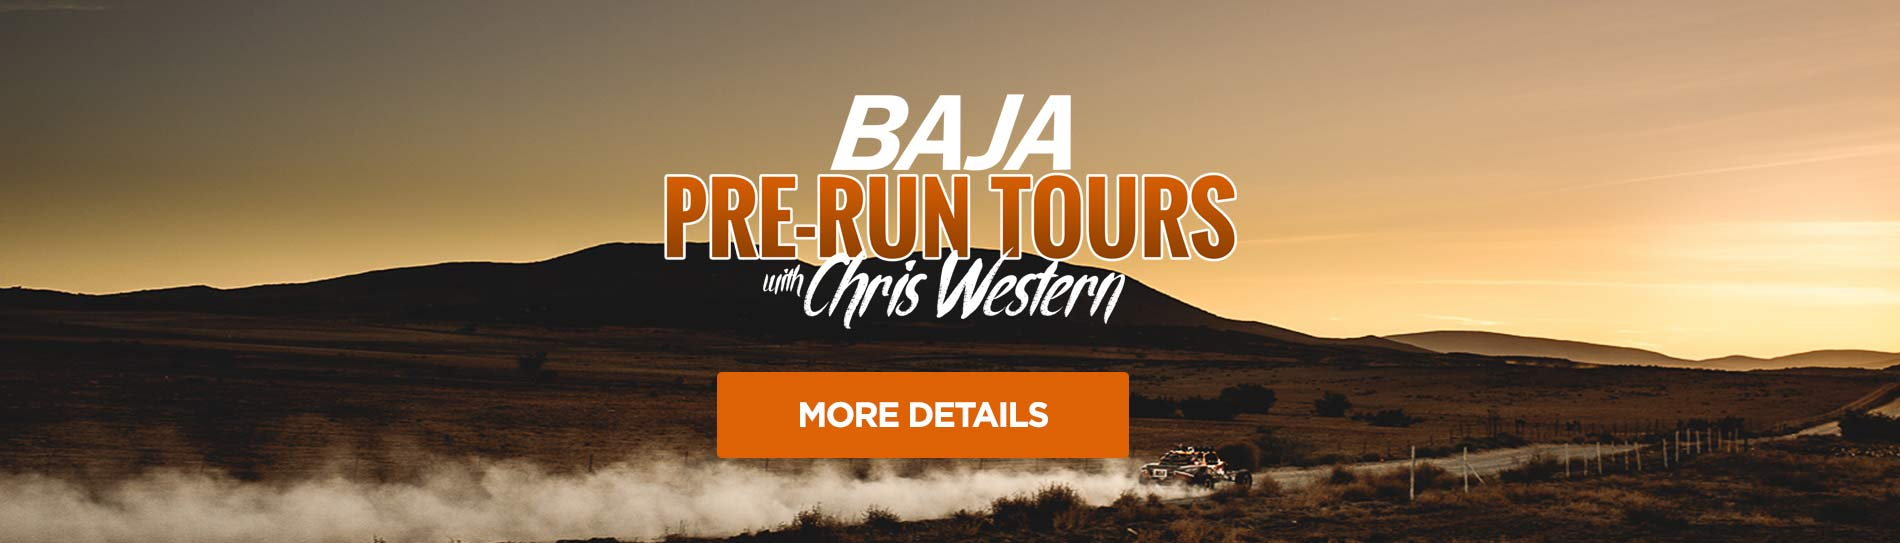 BAJA PRERUN TOURS with Chris Western